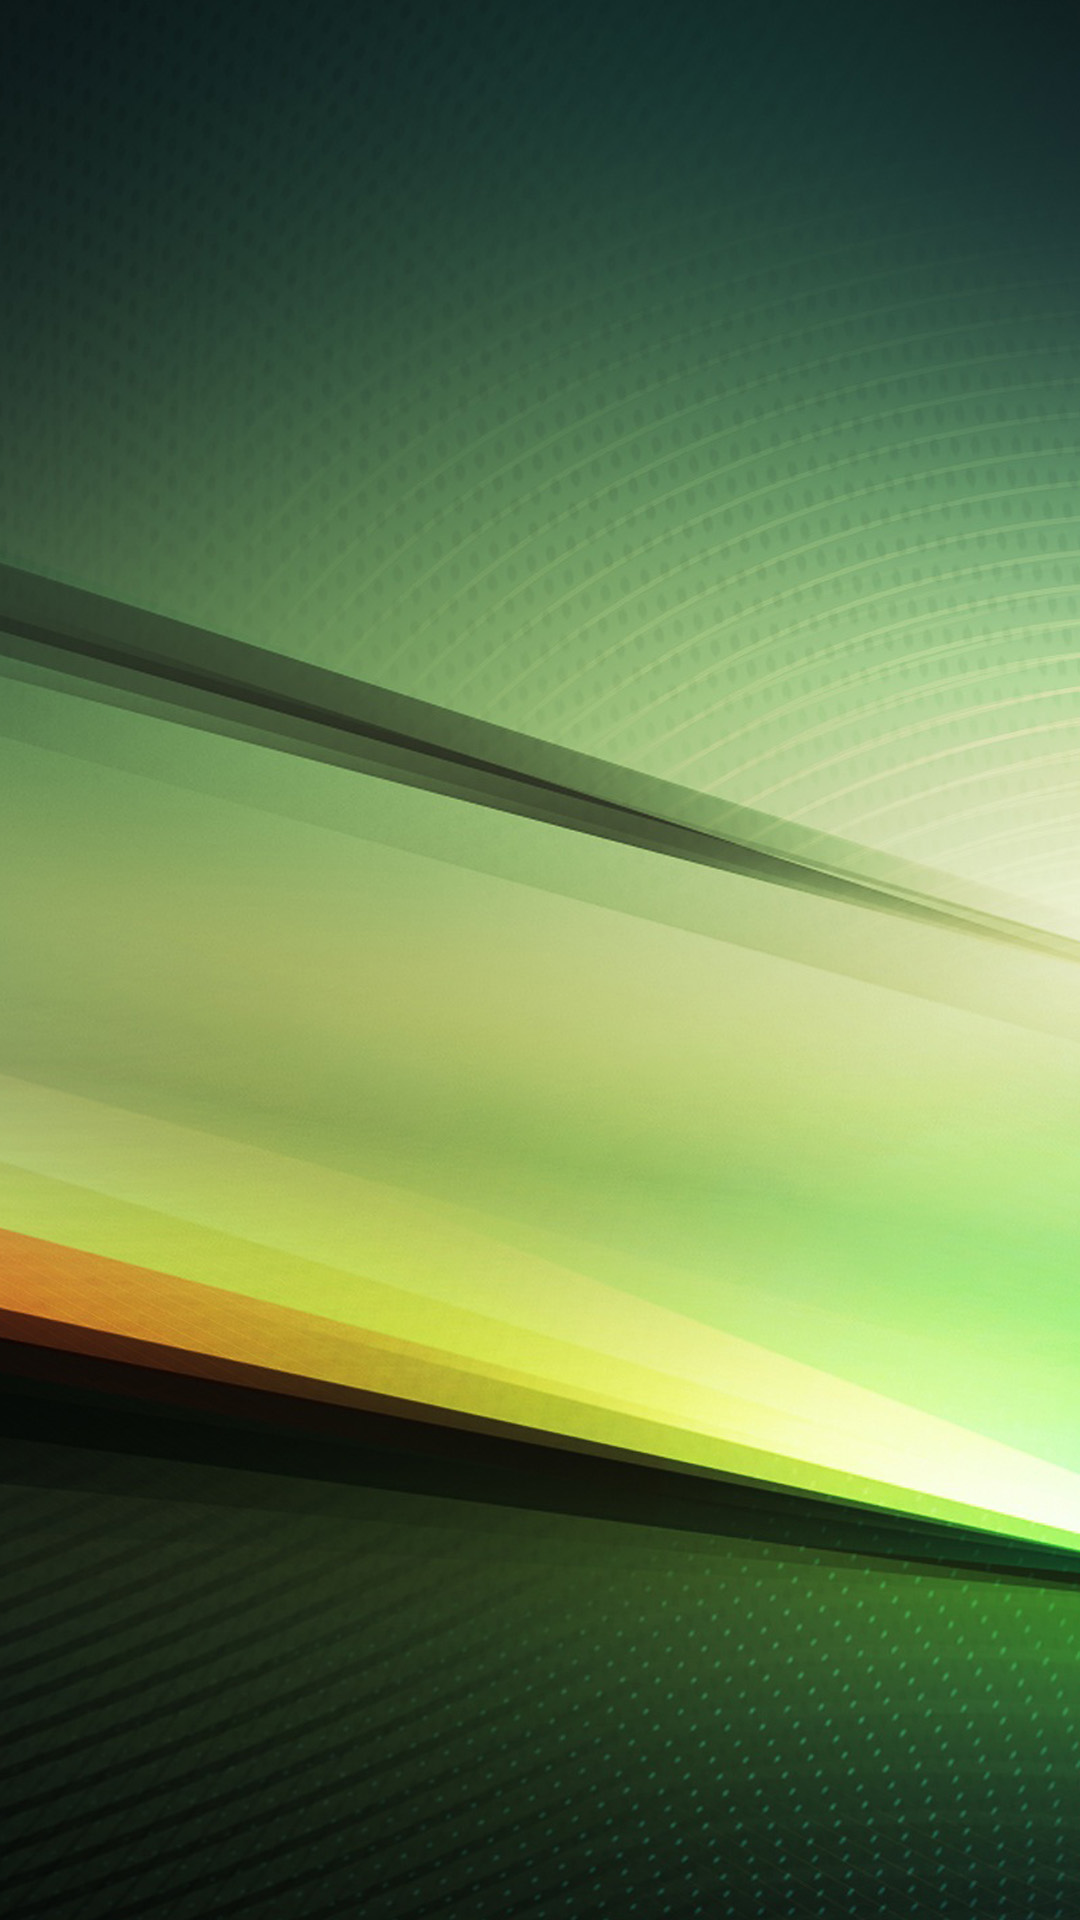 3d Wallpaper Home Screen Green Spectrum Best Htc One Wallpapers Free And Easy To